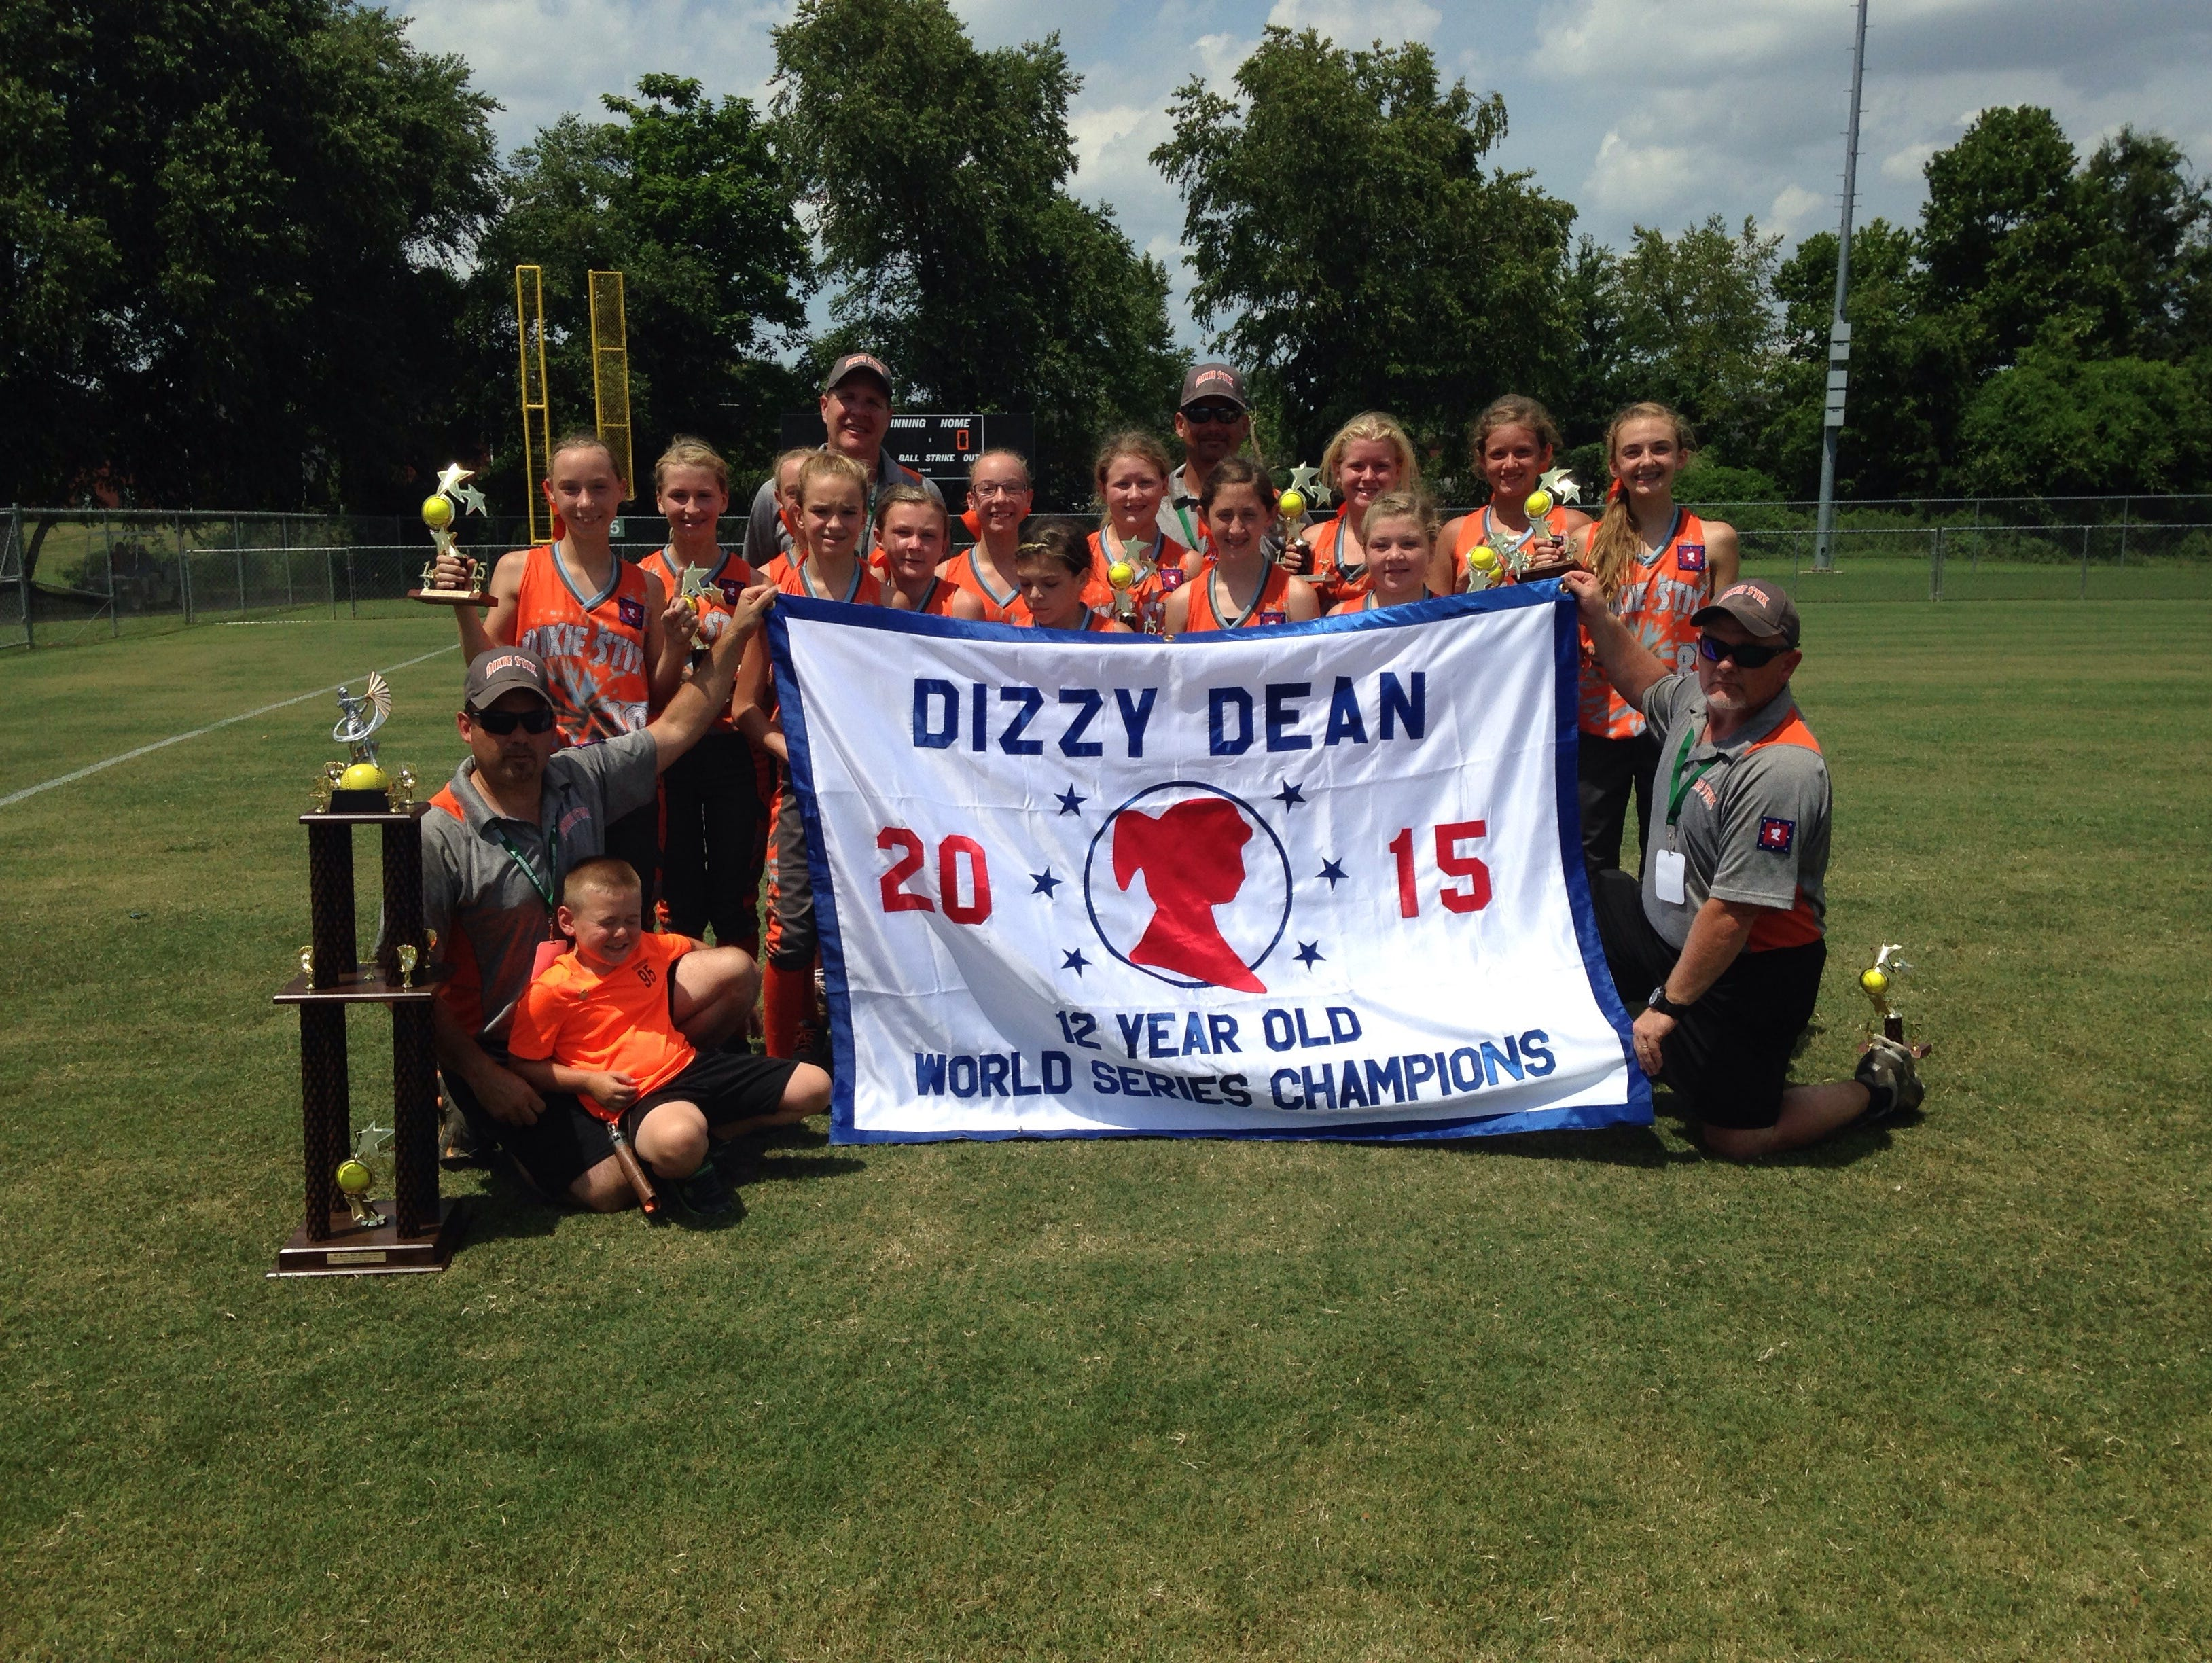 The Mountain All-Stars/Dixie Stix won the Dizzy Dean 12U World Series on Sunday in Southaven, Miss.